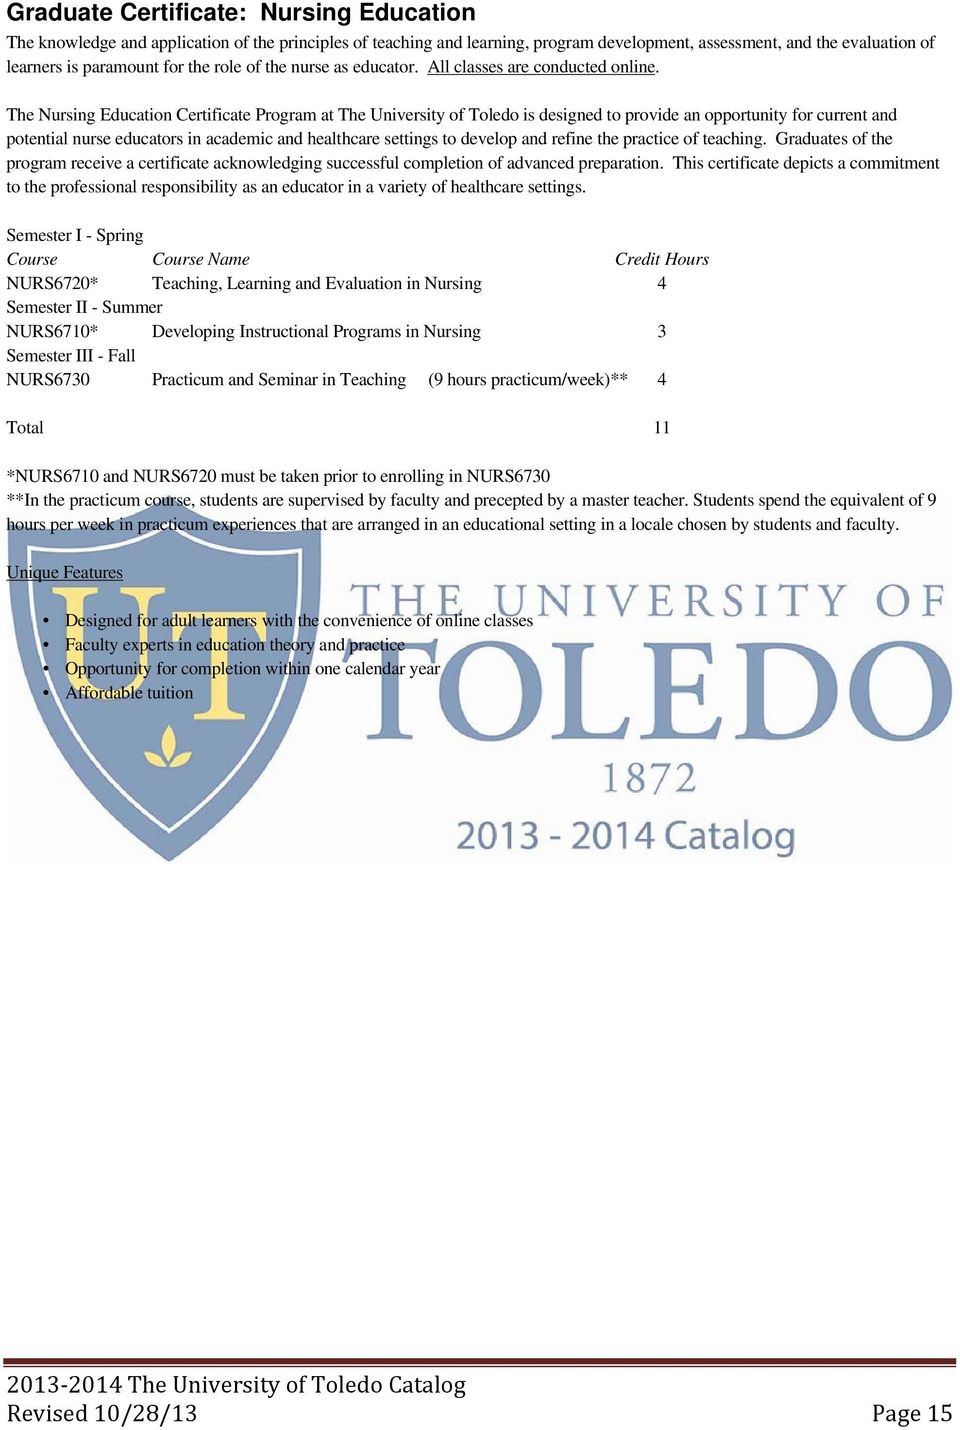 The Nursing Education Certificate Program at The University of Toledo is designed to provide an opportunity for current and potential nurse educators in academic and healthcare settings to develop